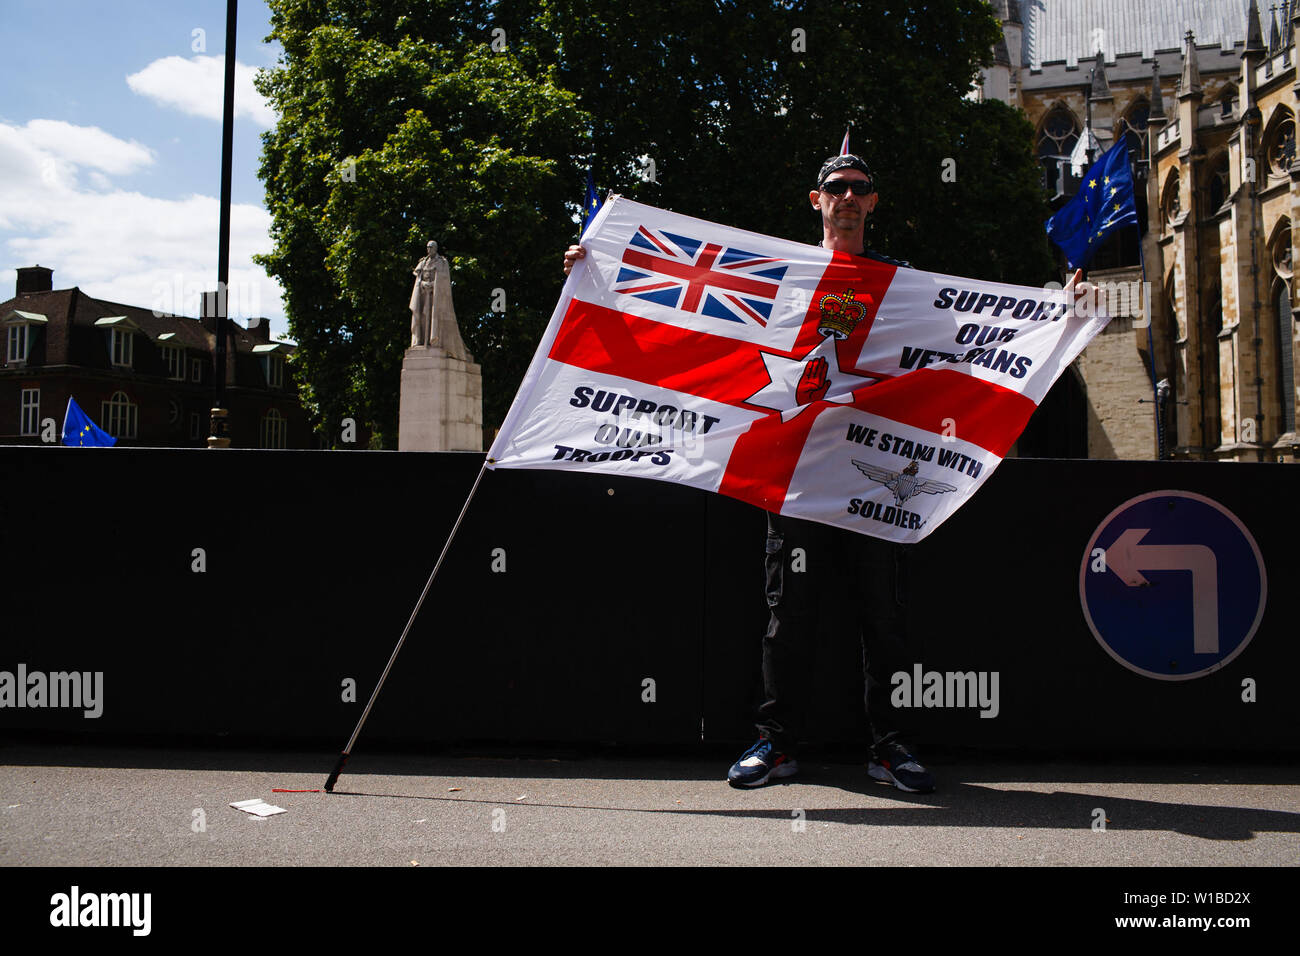 A veteran holds an English flag during a protest against the prosecution of former British soldiers for wartime killings held outside the Houses of Parliament. The demonstration centred on the ongoing case of the as-yet-unnamed 'Soldier F', charged with two counts of murder for killings on Bloody Sunday in Londonderry, Northern Ireland, in 1972. - Stock Image